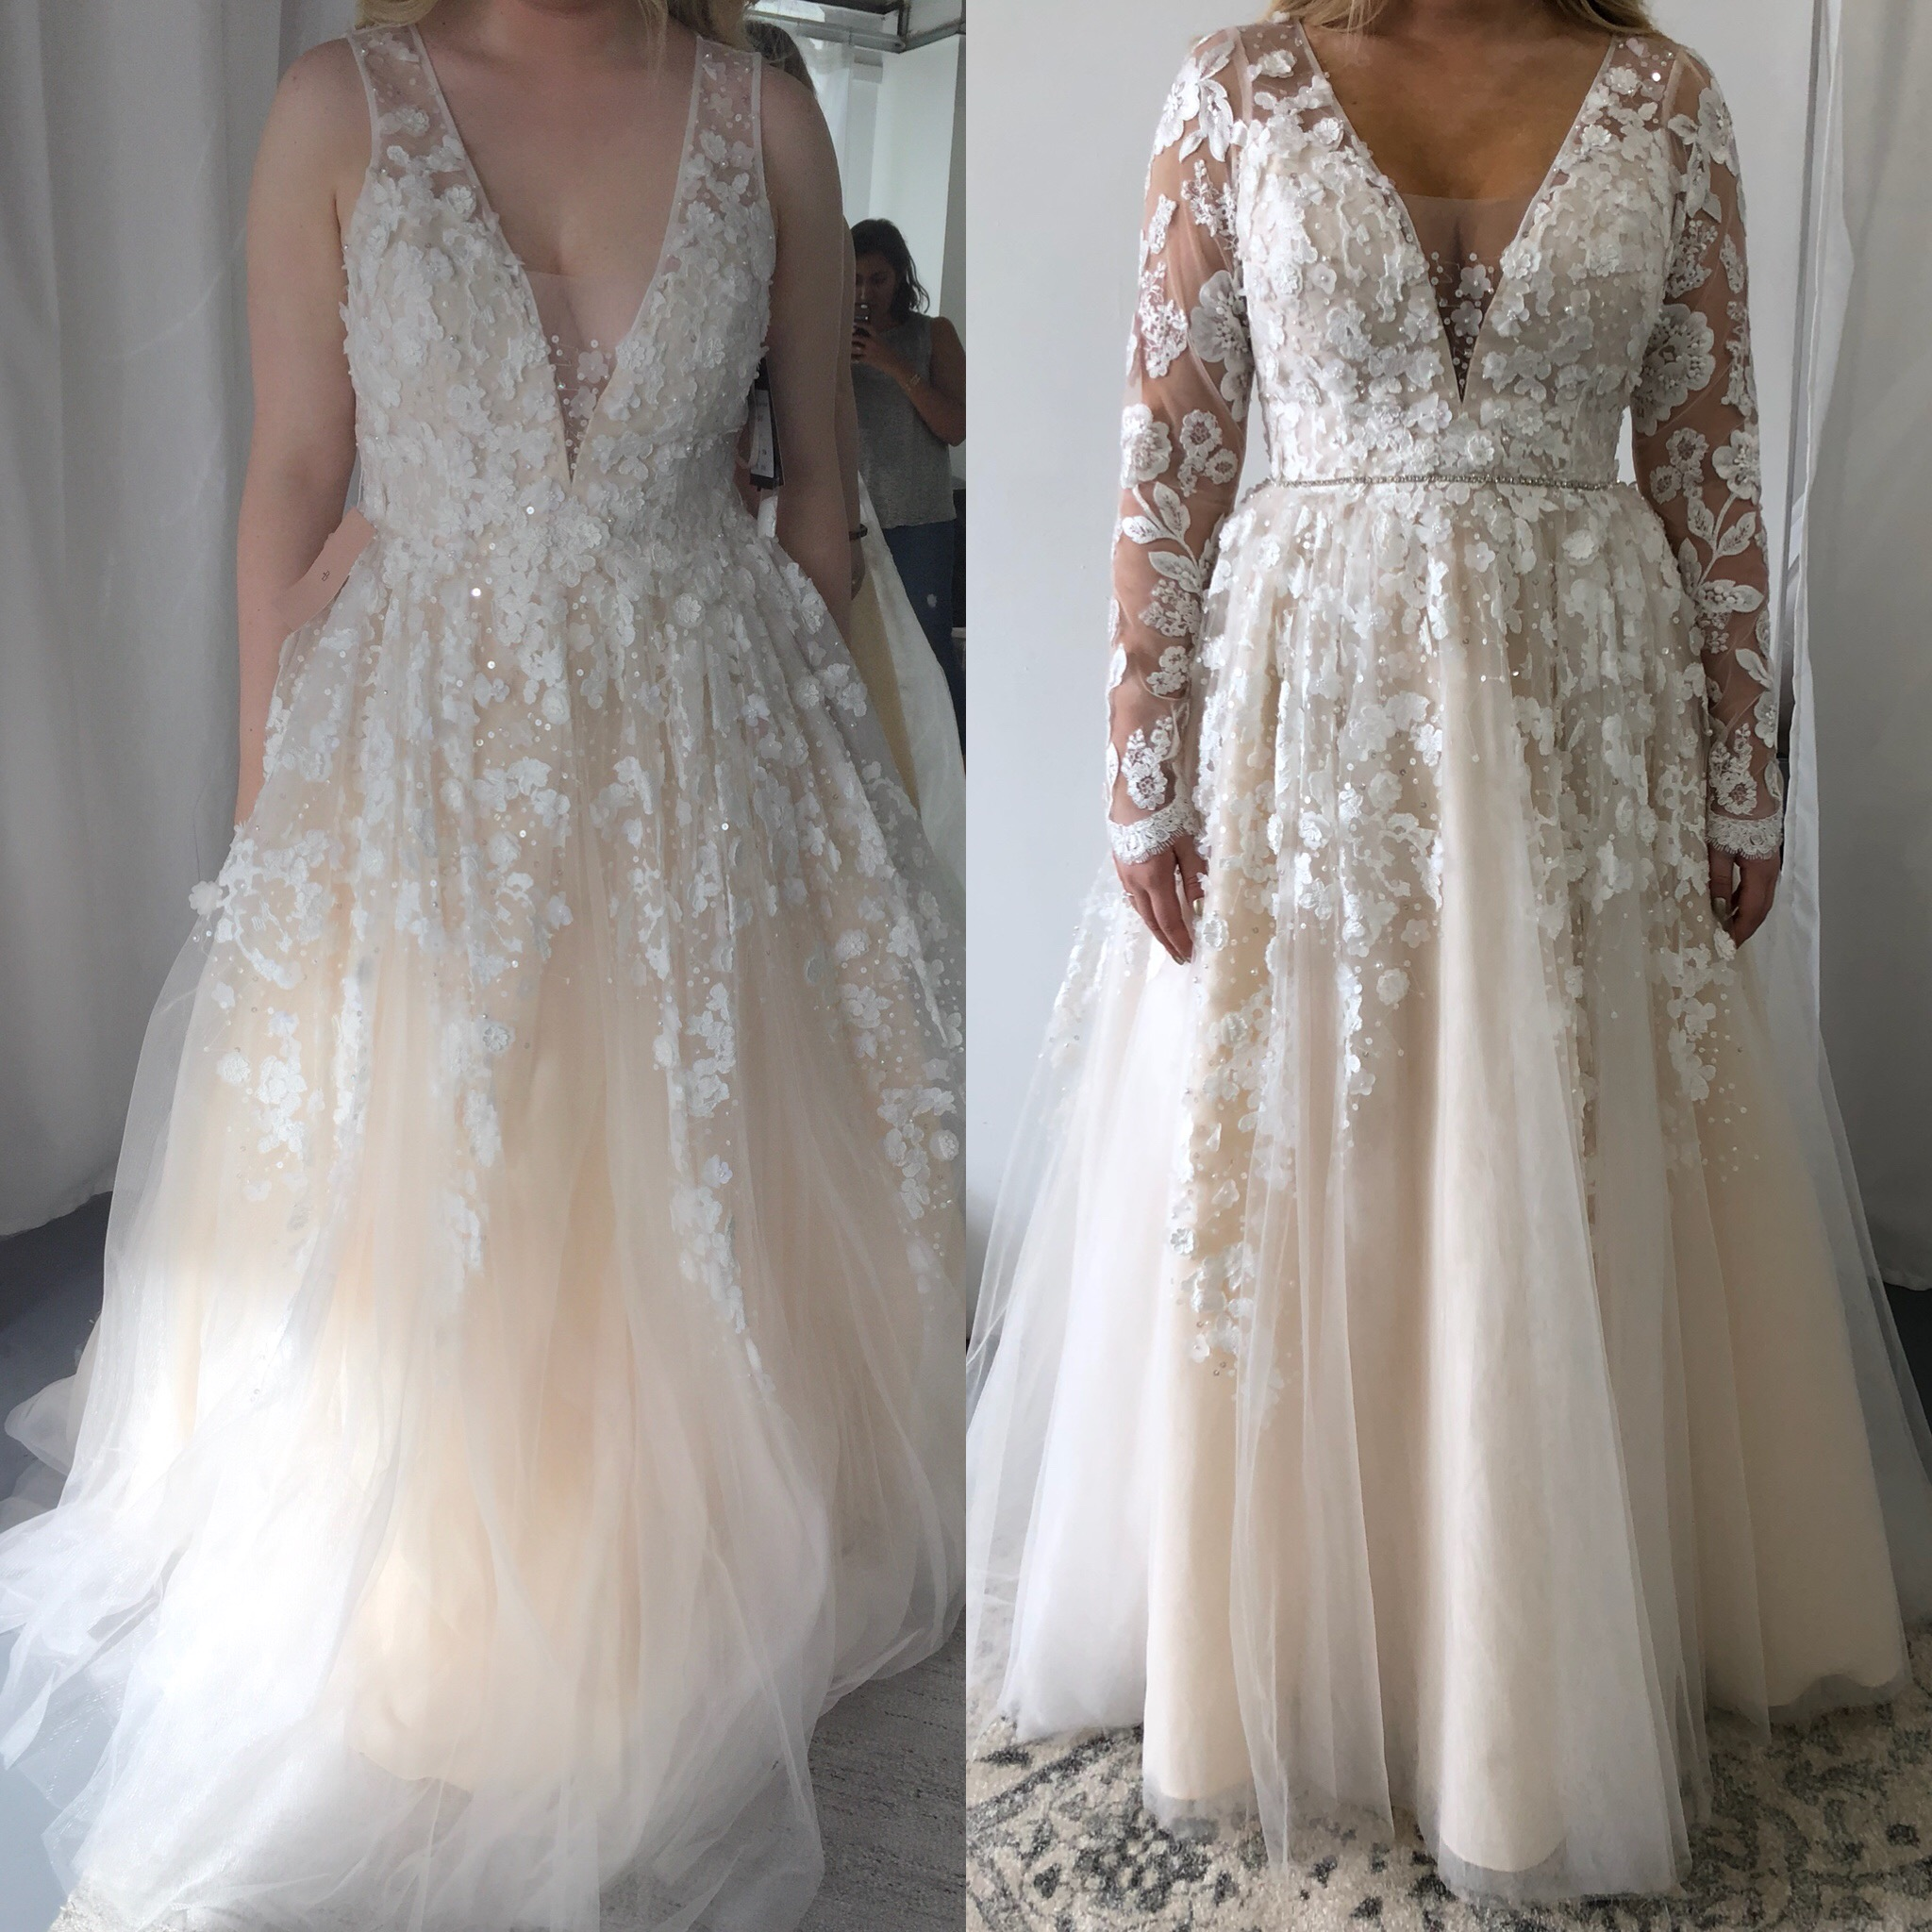 Wedding Dress Alterations Near Me.Services The Williamsburg Seamster